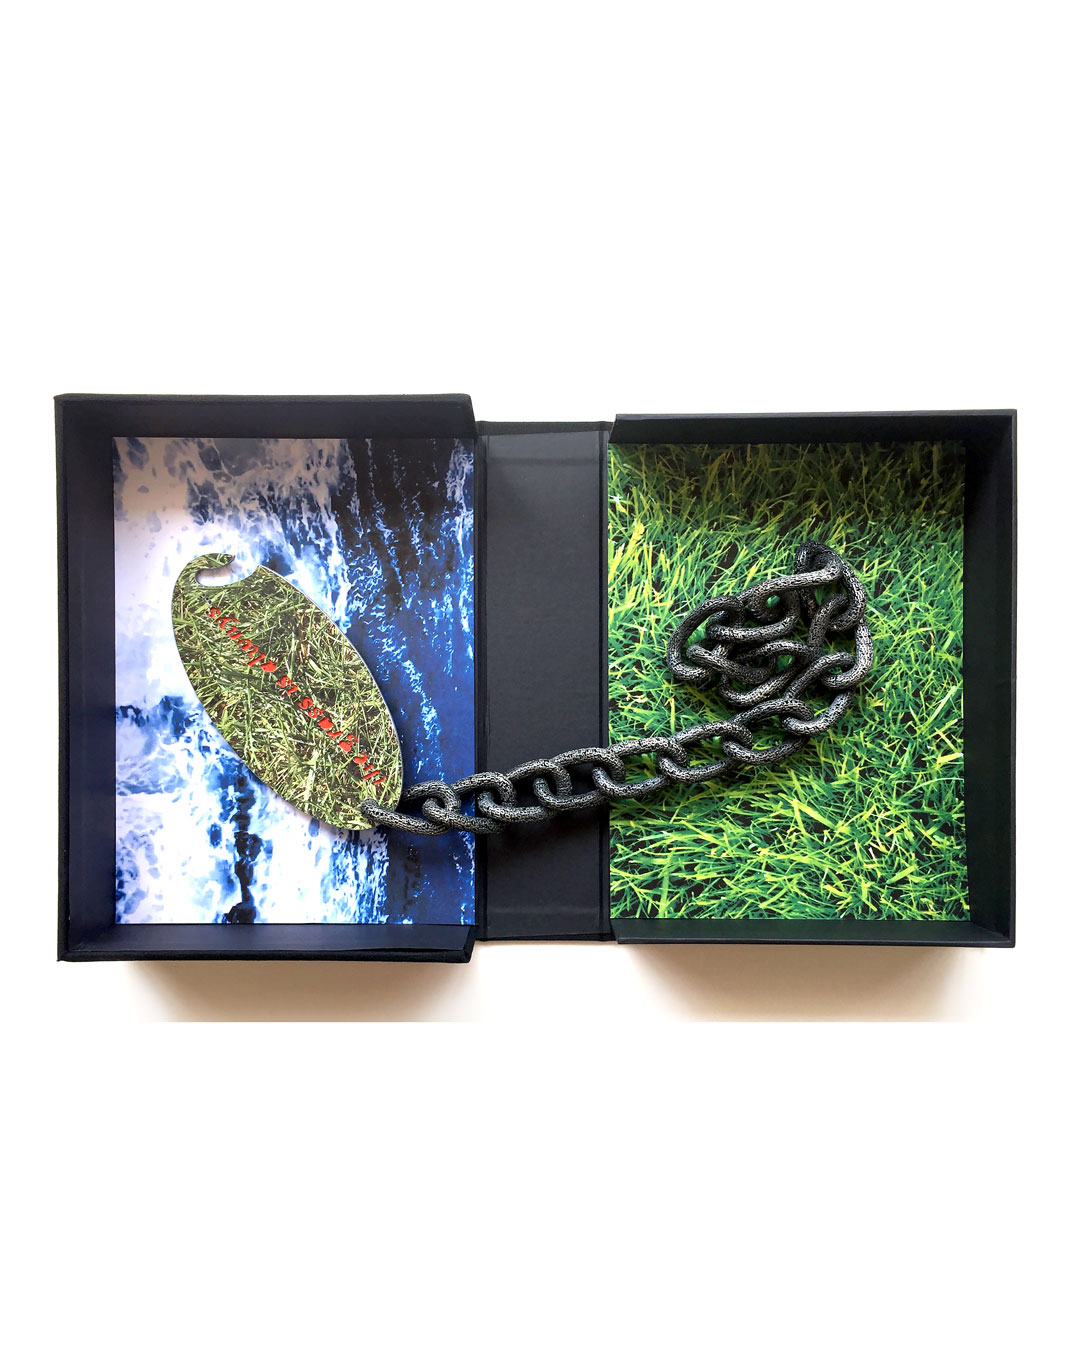 Jonathan Boyd, Grass is Greener…, necklace, silver, UV printed aluminium, lacquer, steel, 300 x 300 x 30 mm, €7000